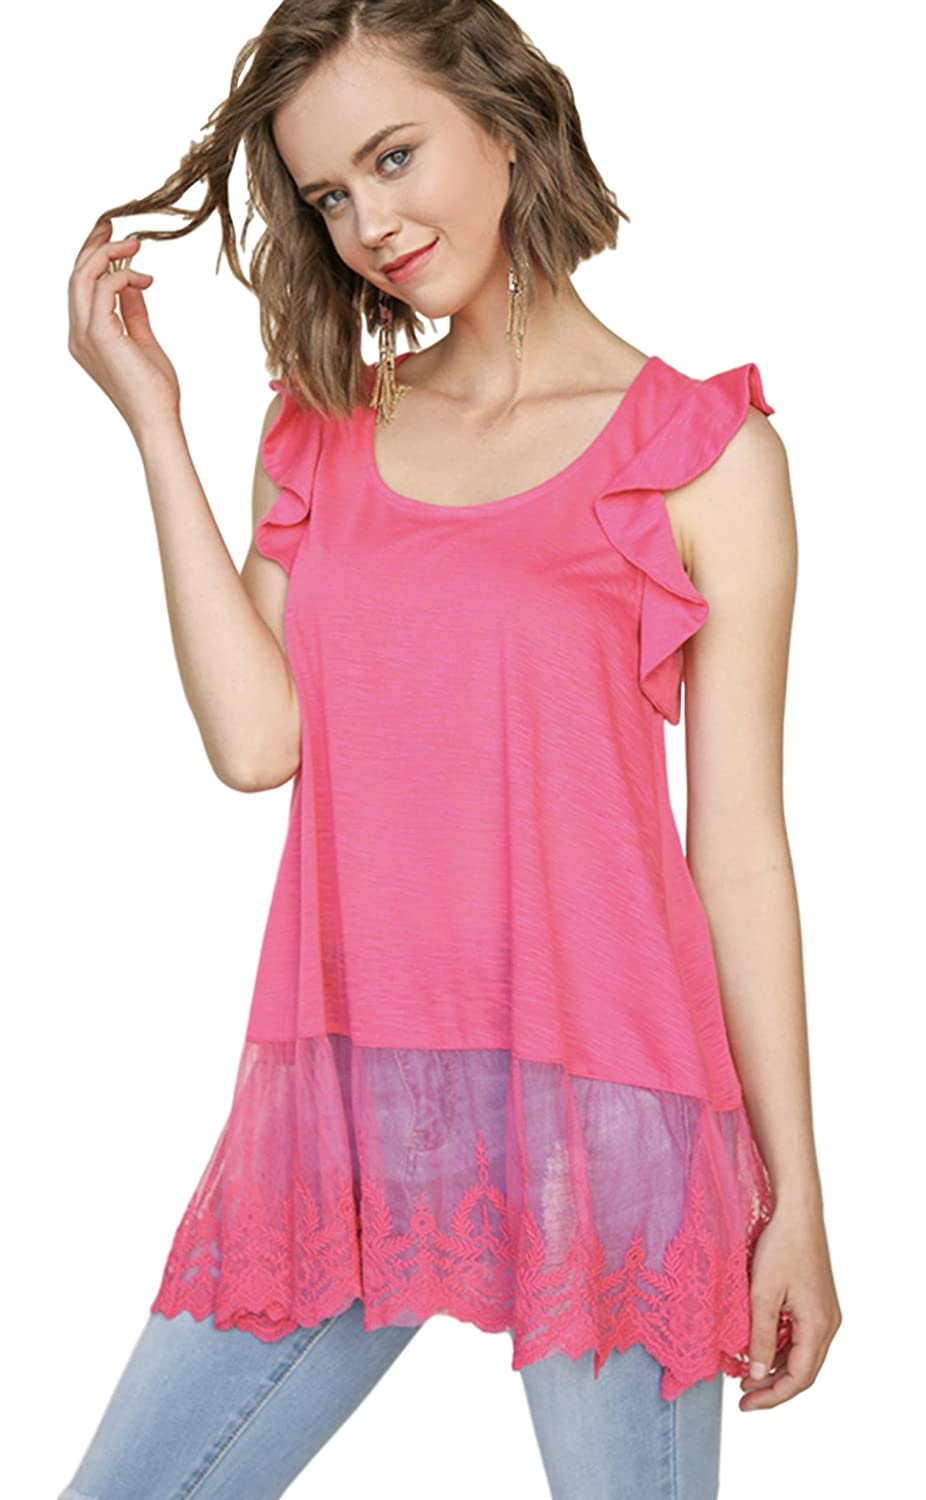 7cb377075345d2 Umgee Women s Slub Knit Sleeveless Top with Lace Trim and Ruffle Shoulder  Details at Amazon Women s Clothing store